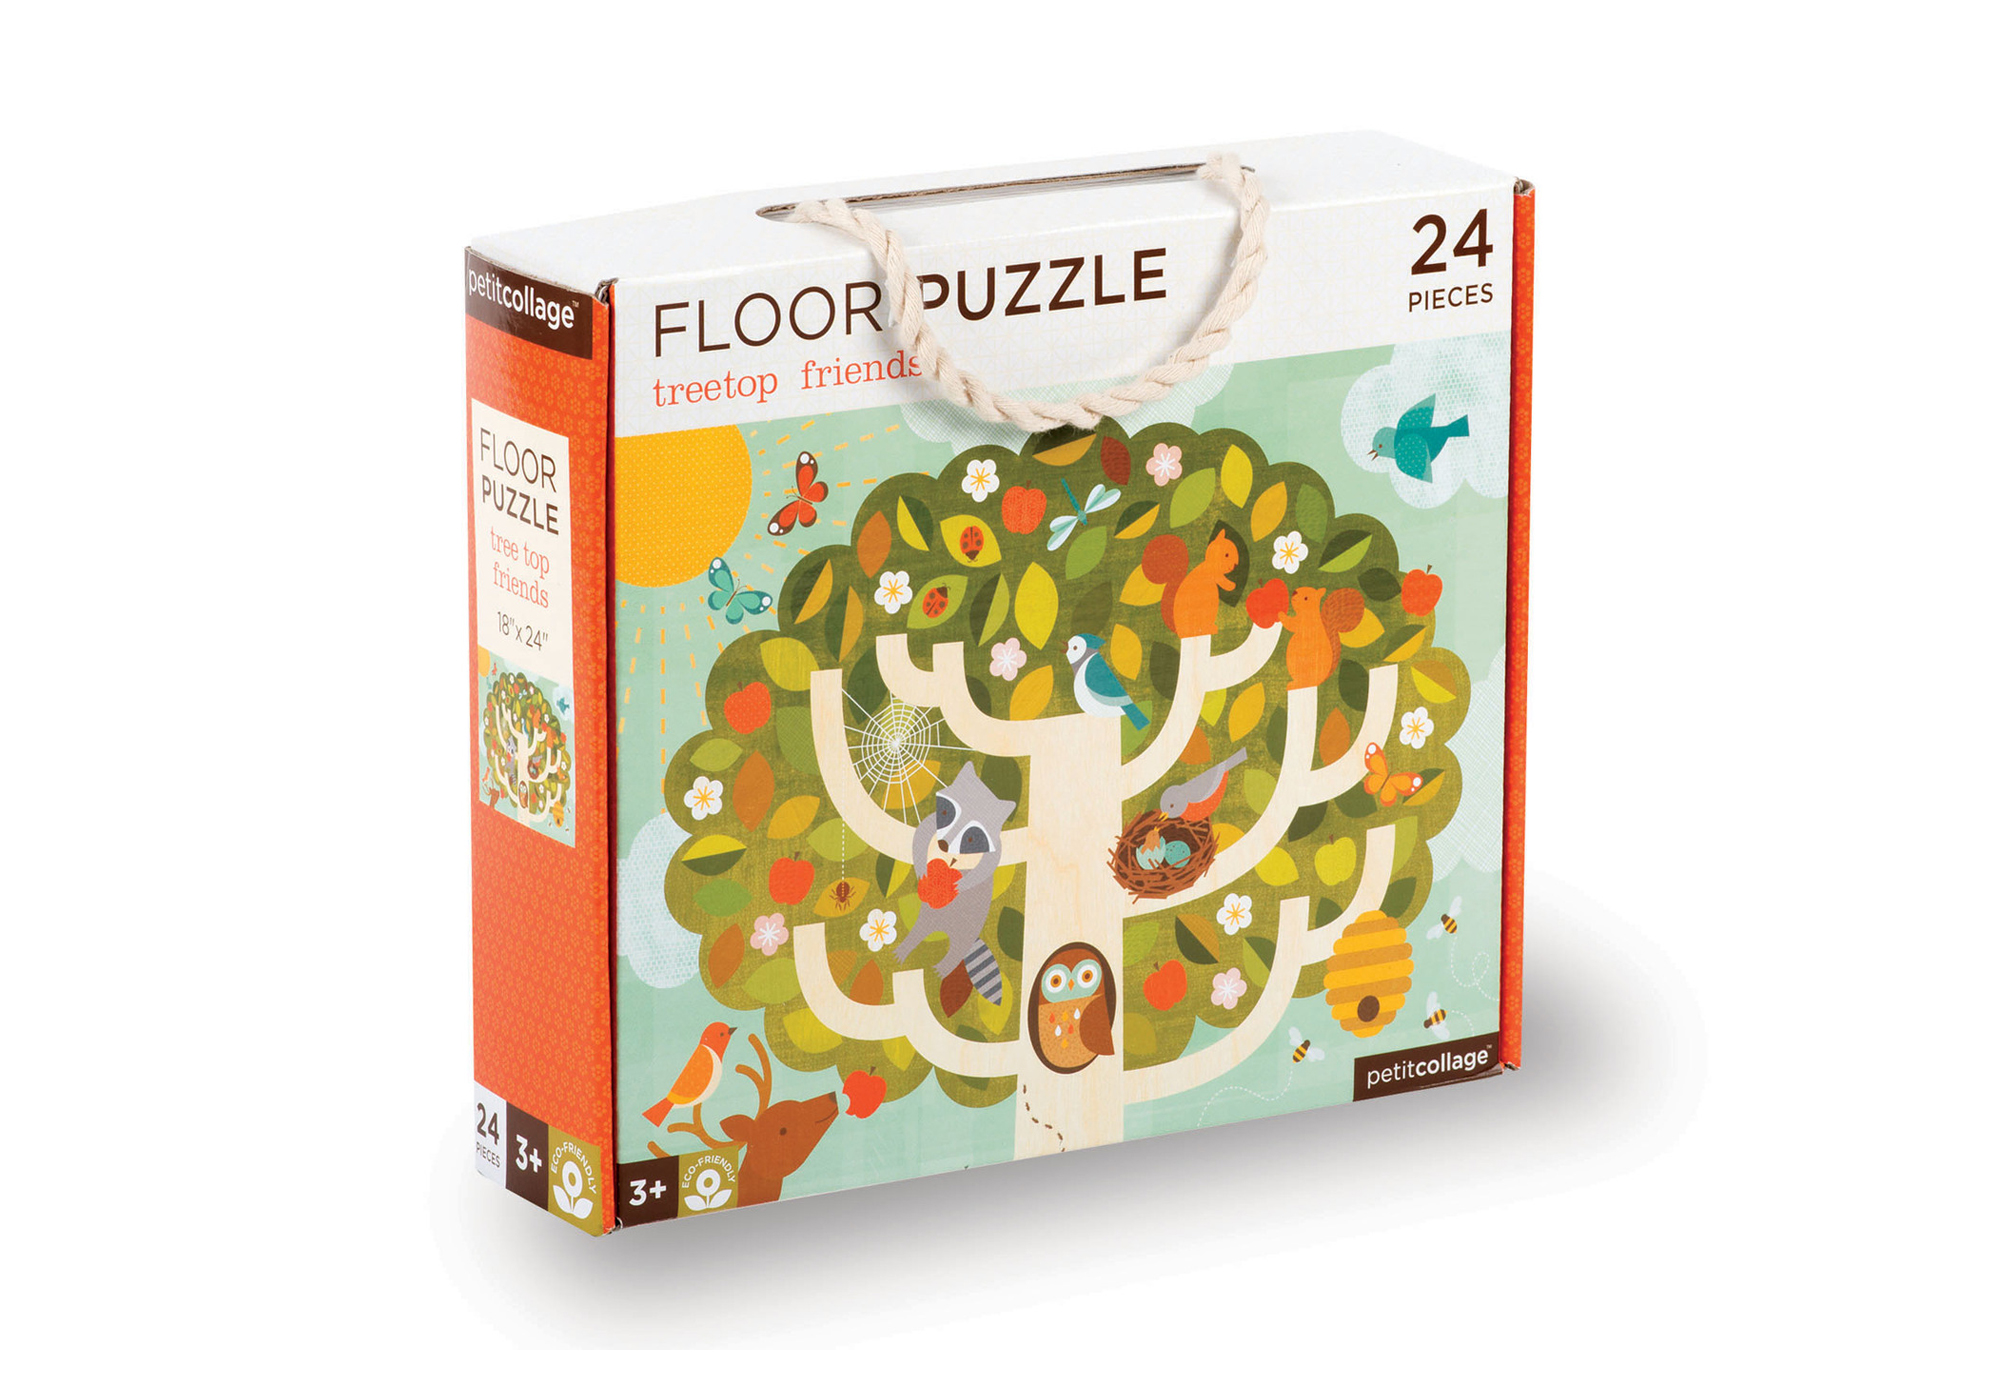 Floor Puzzle Treetop friends